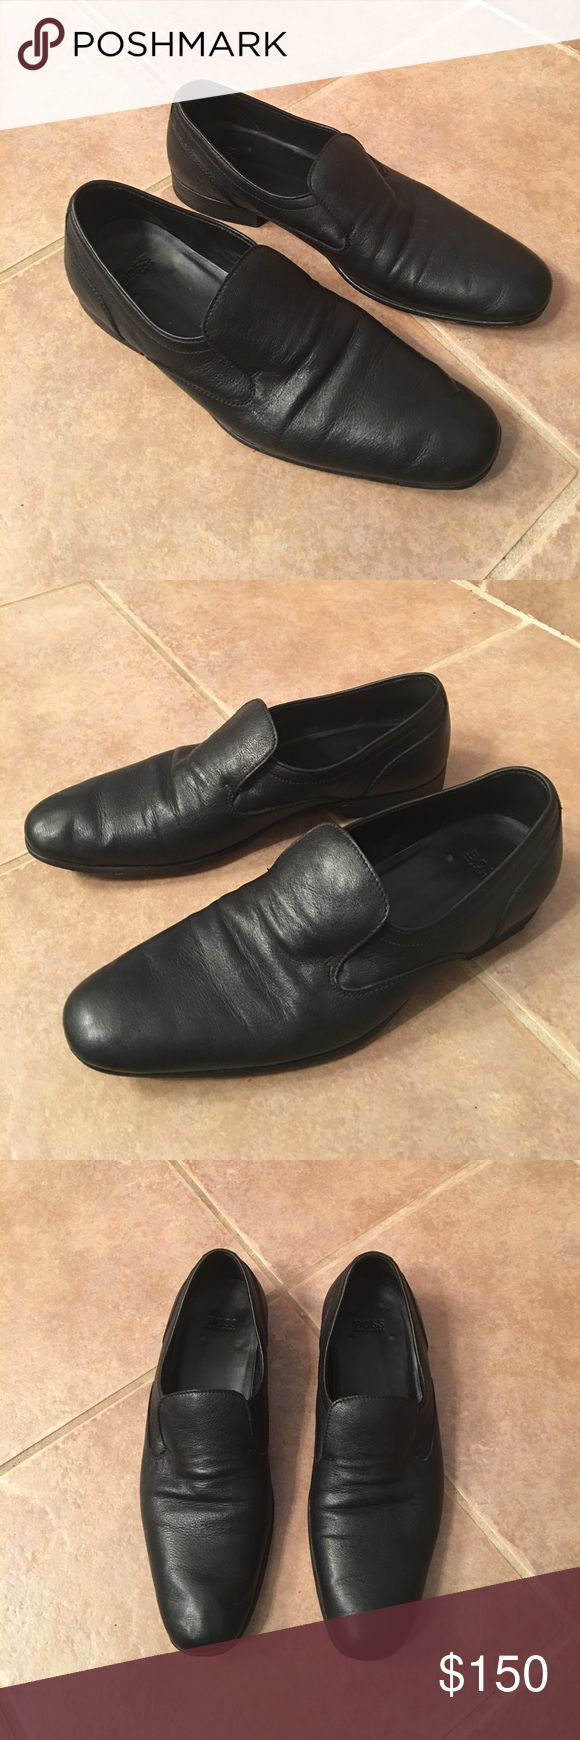 Hugo Boss men's slip on loafers EUC with wear and tear as pictured Hugo Boss Shoes Loafers & Slip-Ons